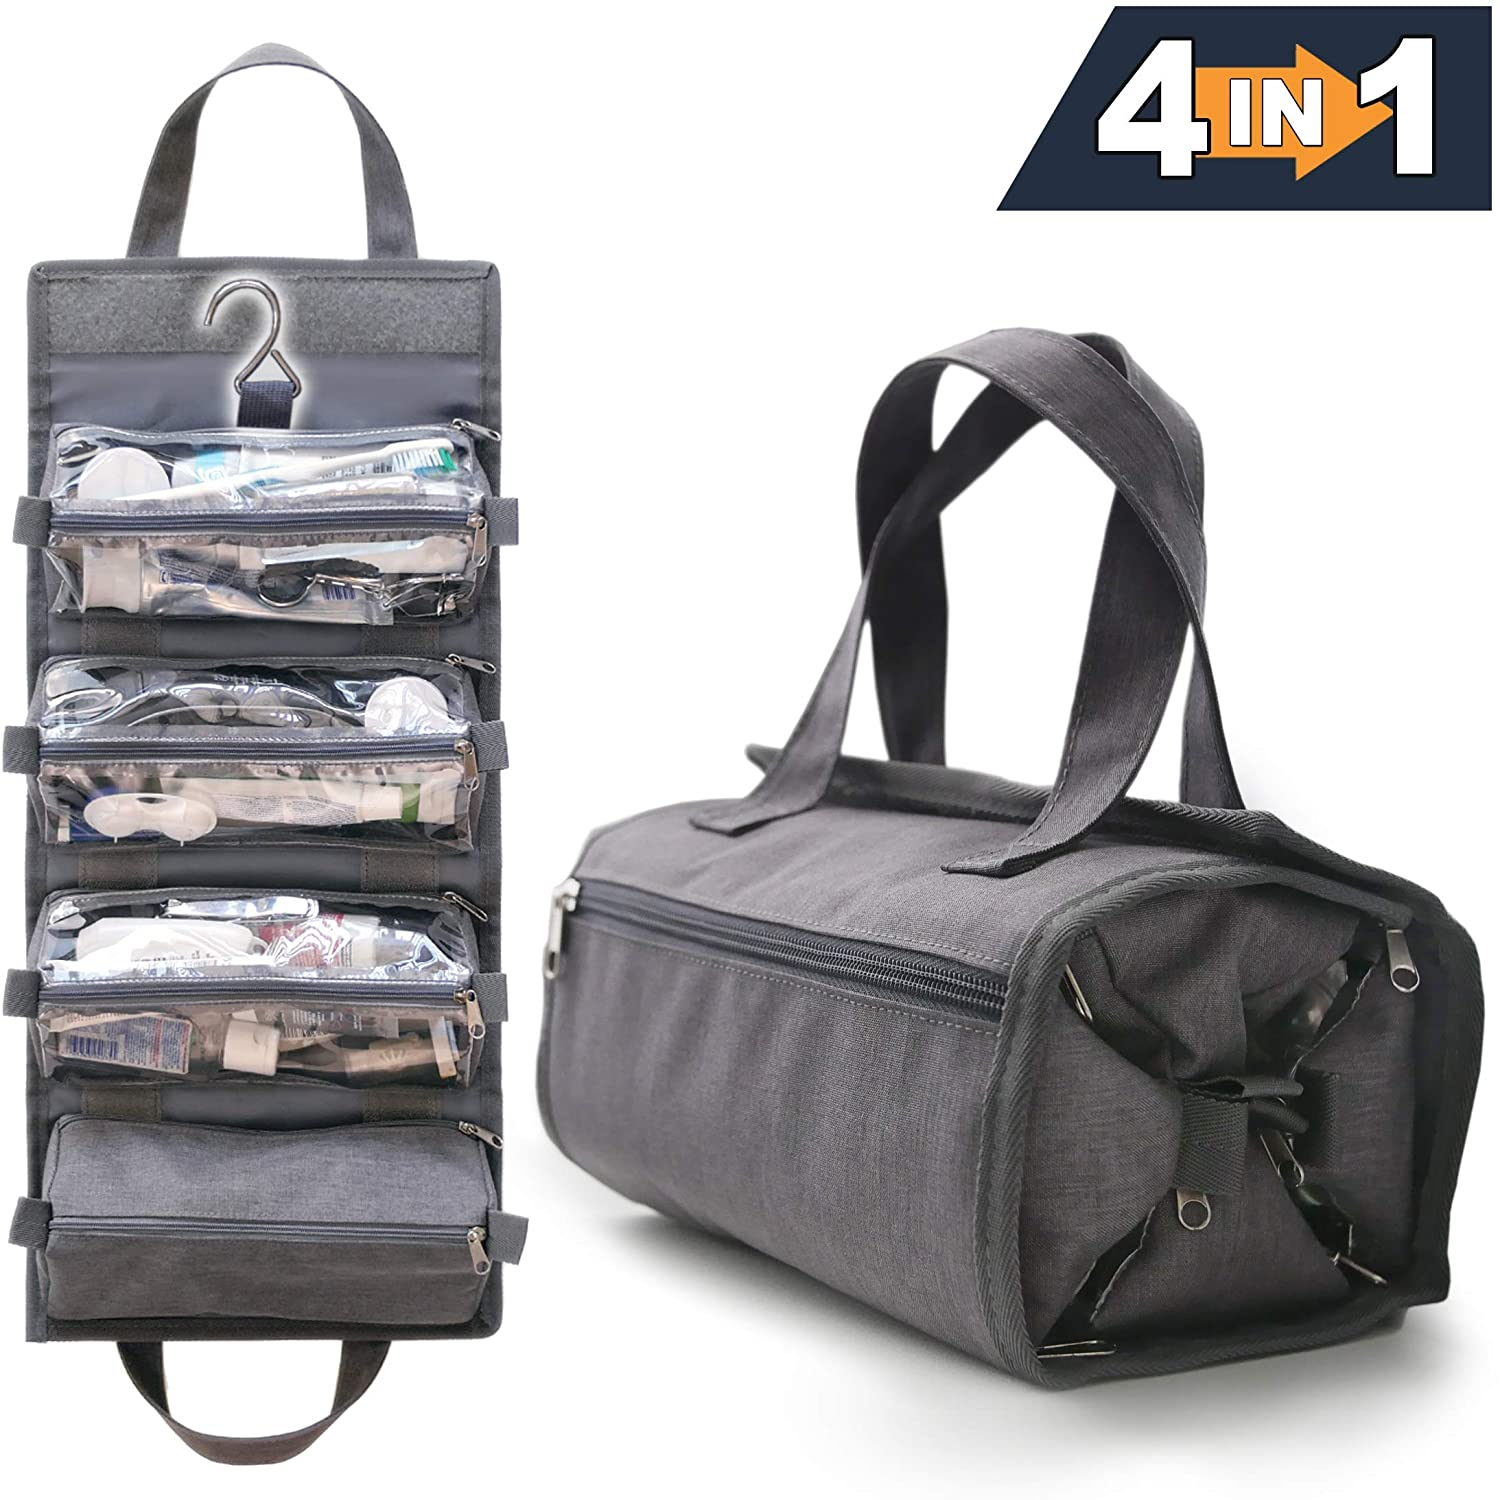 4-in-1 Hanging Toiletry Bag Travel Toiletries Bag for Women & Men - Roll Up Compact Cosmetic Kit with Hook   Waterproof, TSA Approved Removable Carry On Pouches (Heather Gray)